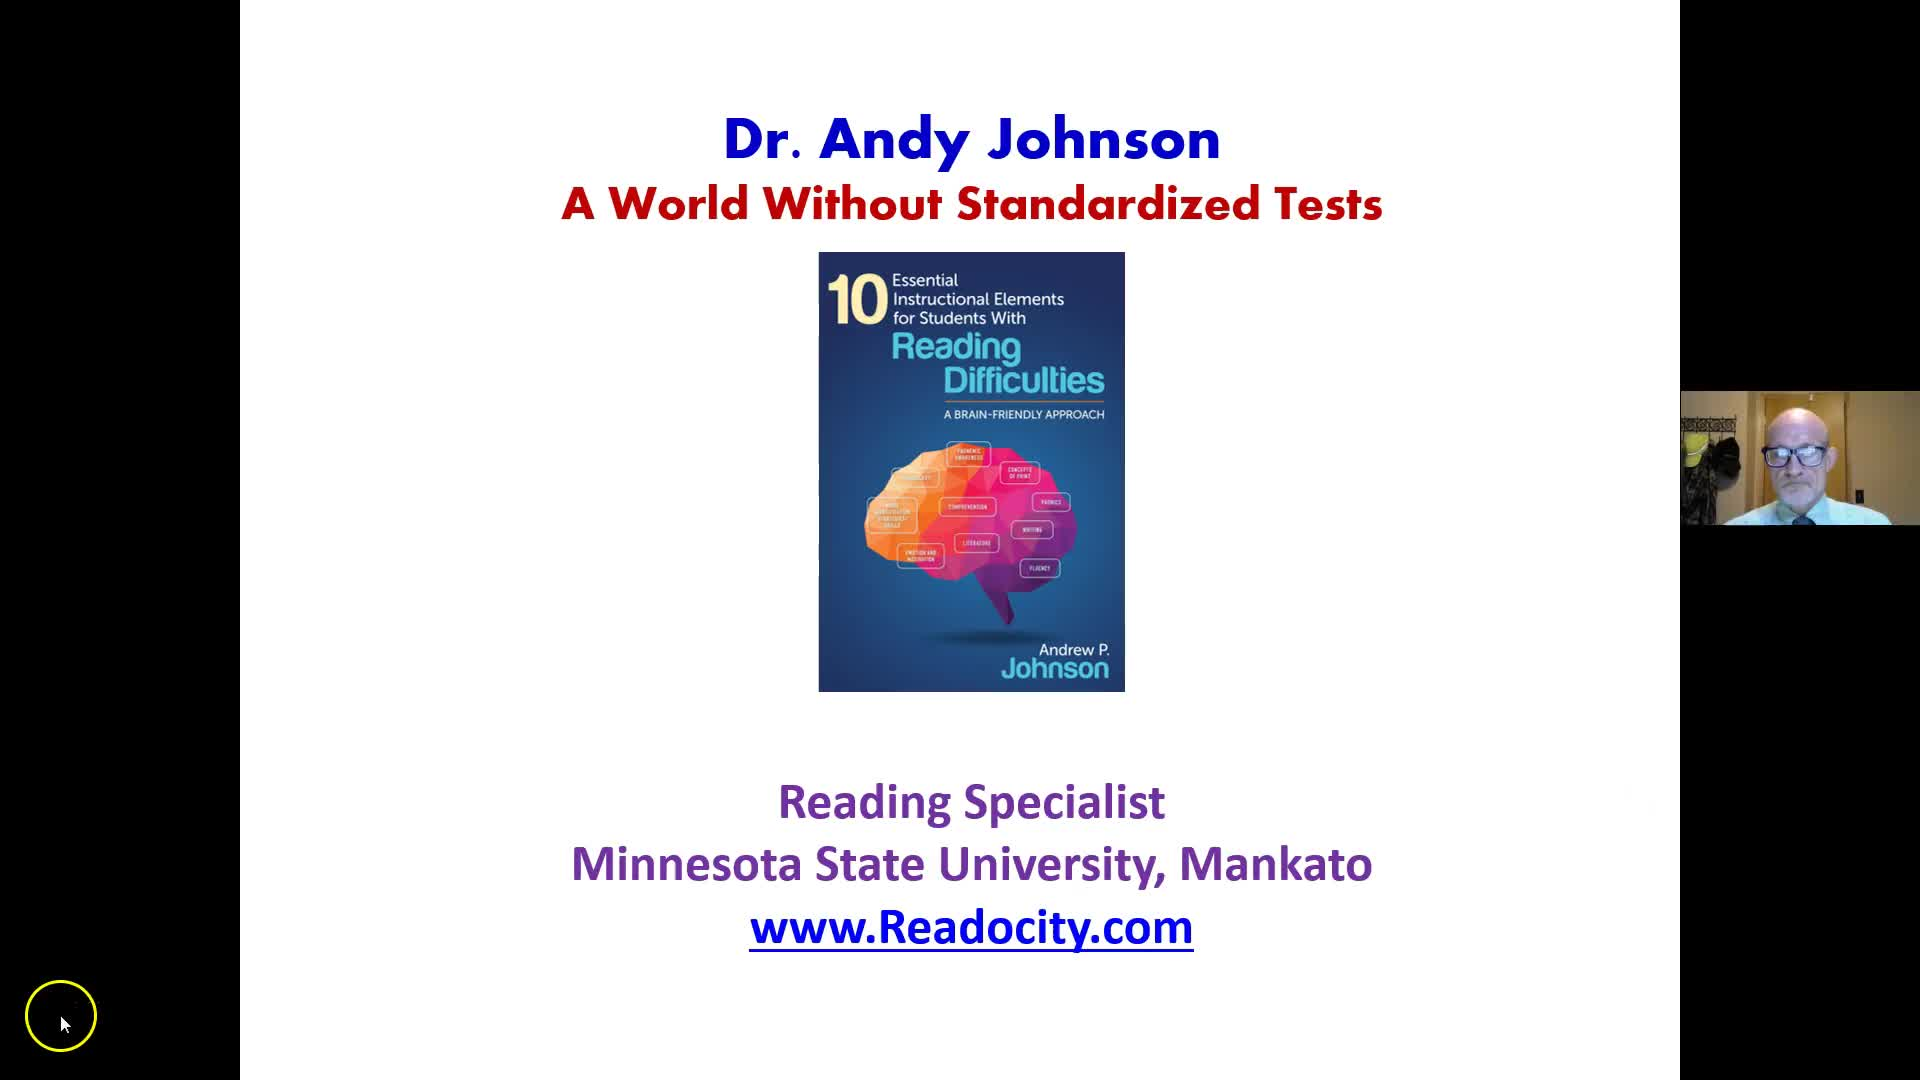 LIFE WITHOUT STANDARDIZED TESTS